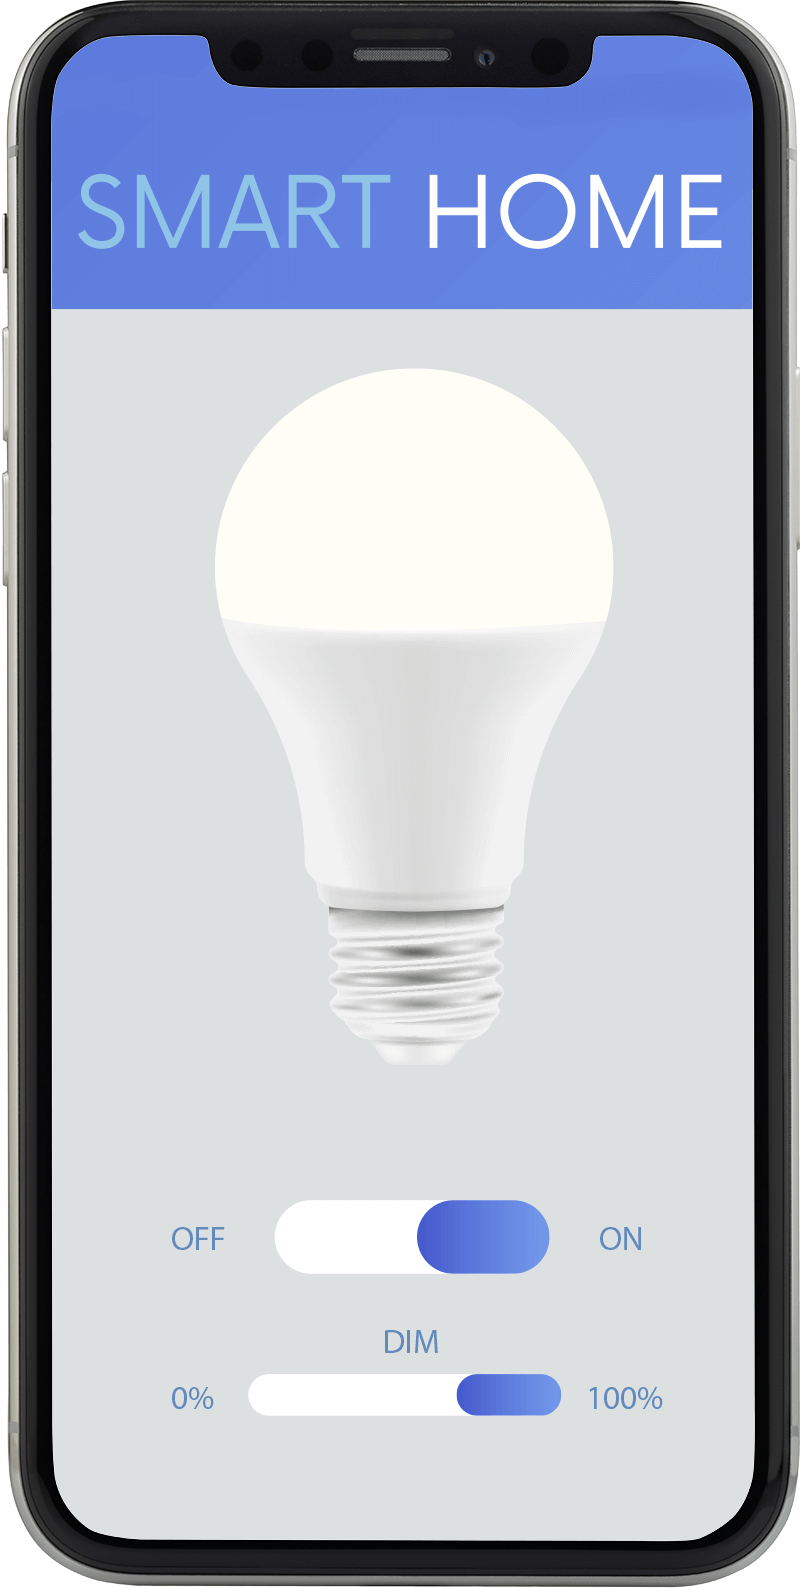 Smartphone shows how to control lights with Qubino Flush Dimmer 0-10V